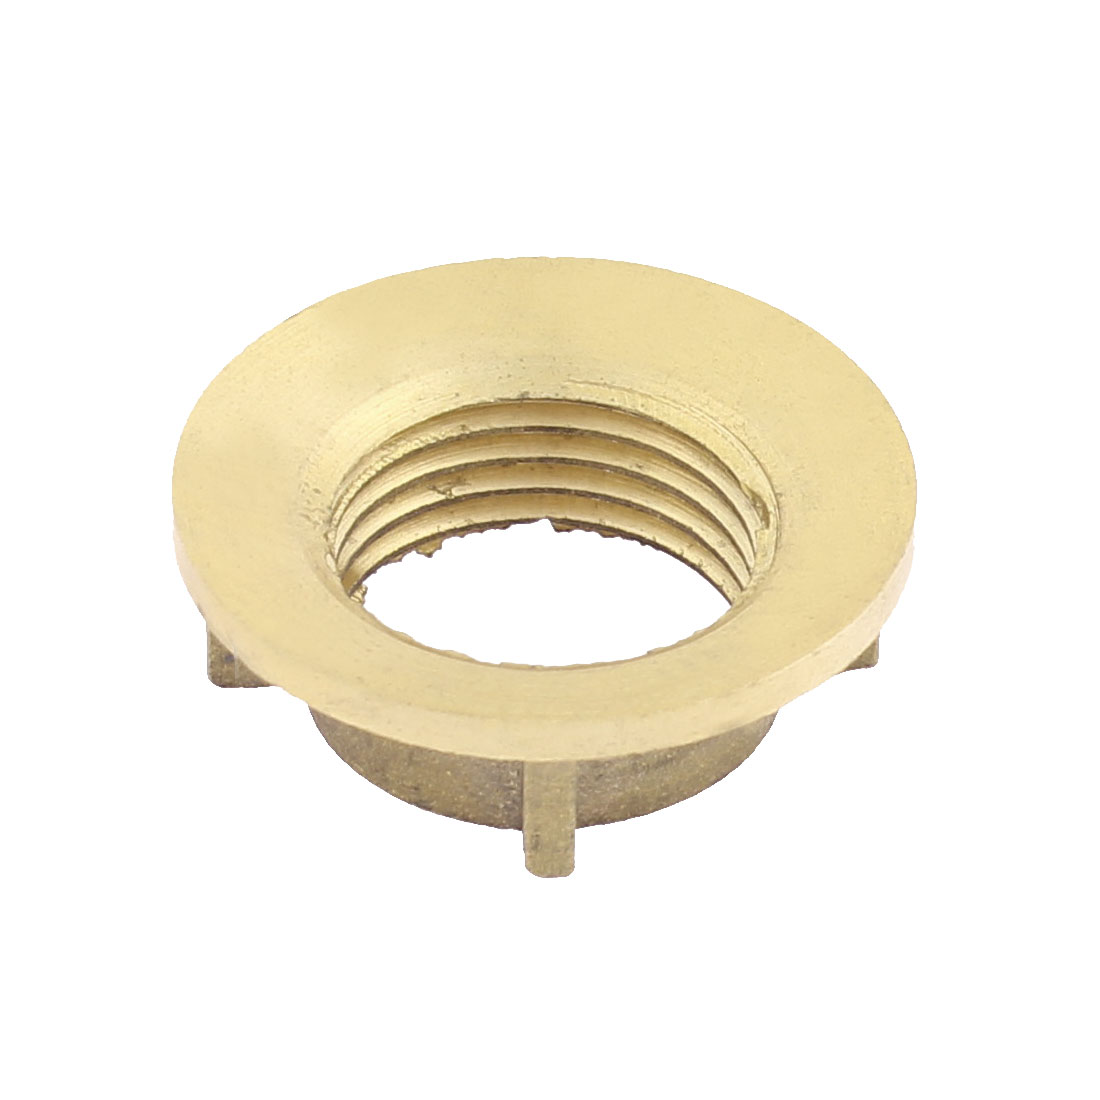 Household Brass Water Tap Fitting Nut Gold Tone 19mm Threaded